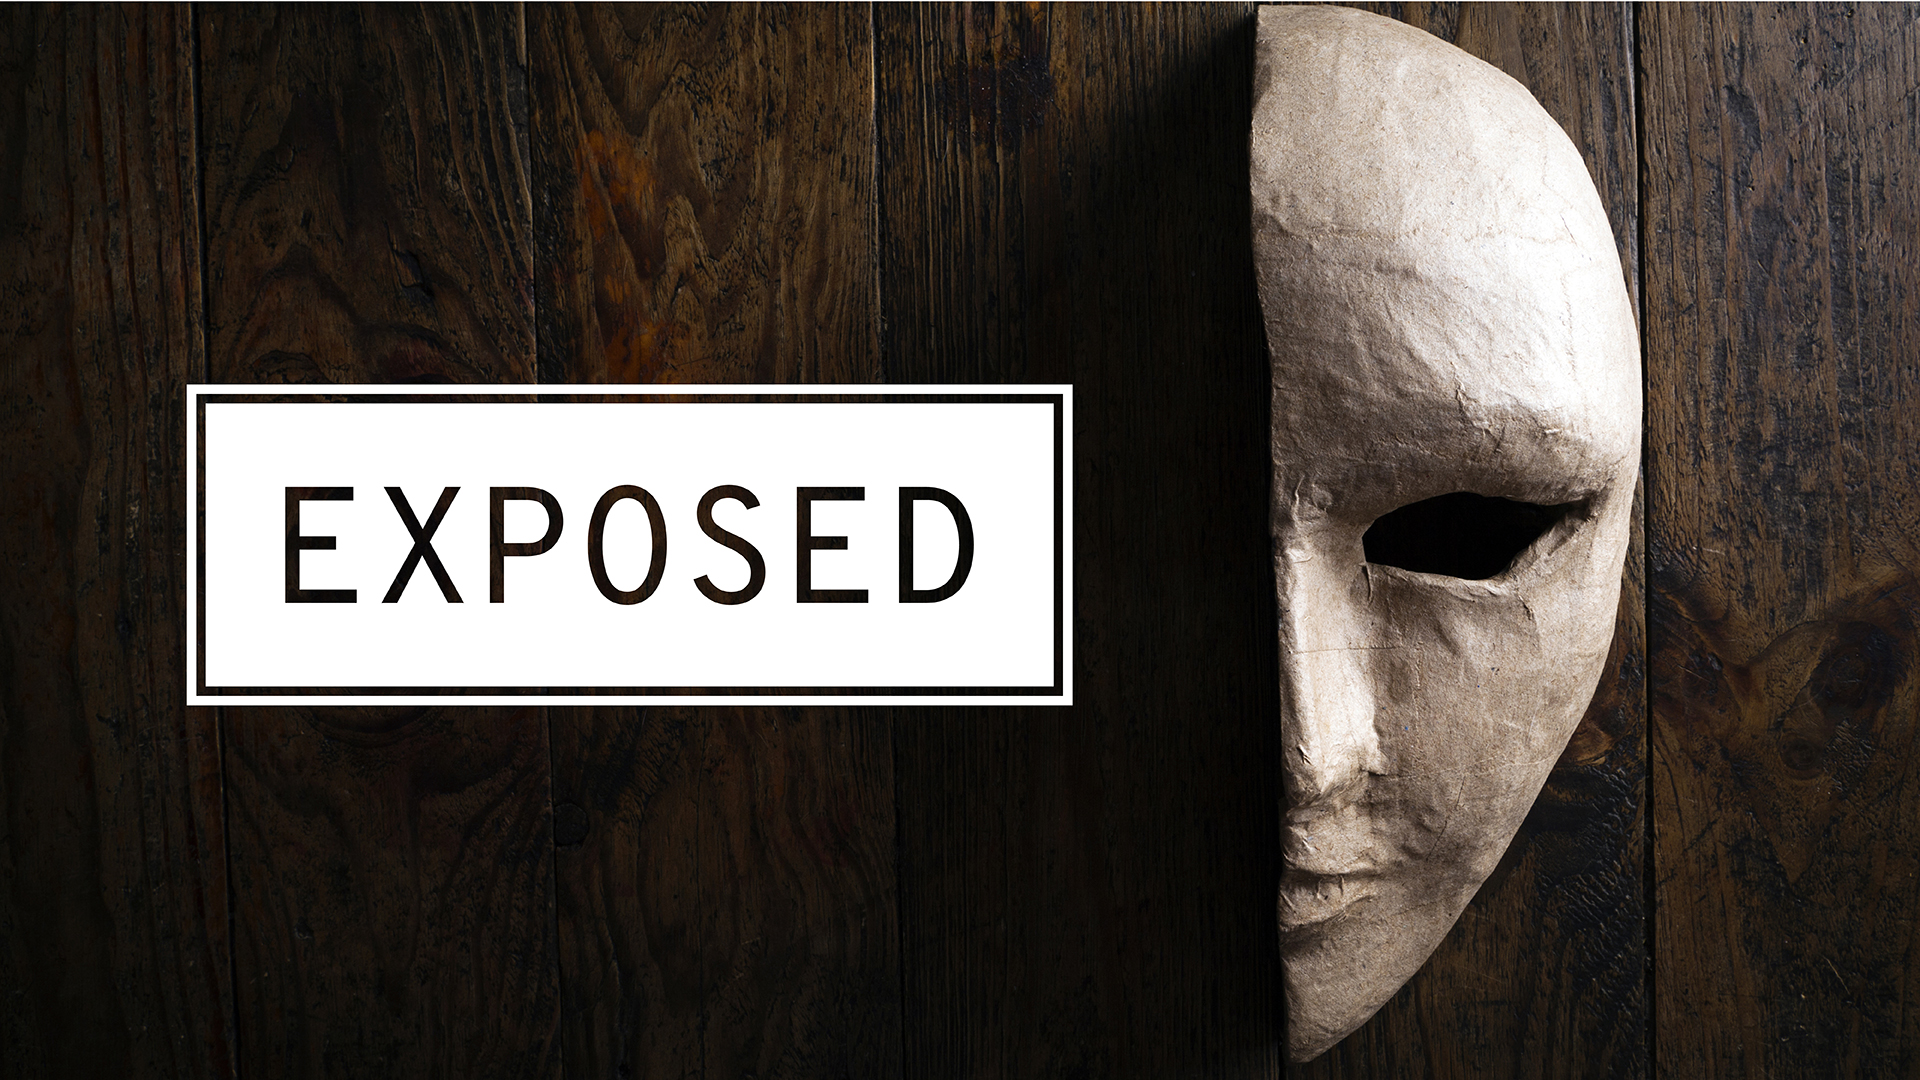 Exposed - Sermon Slide 1920 x 1080.jpg